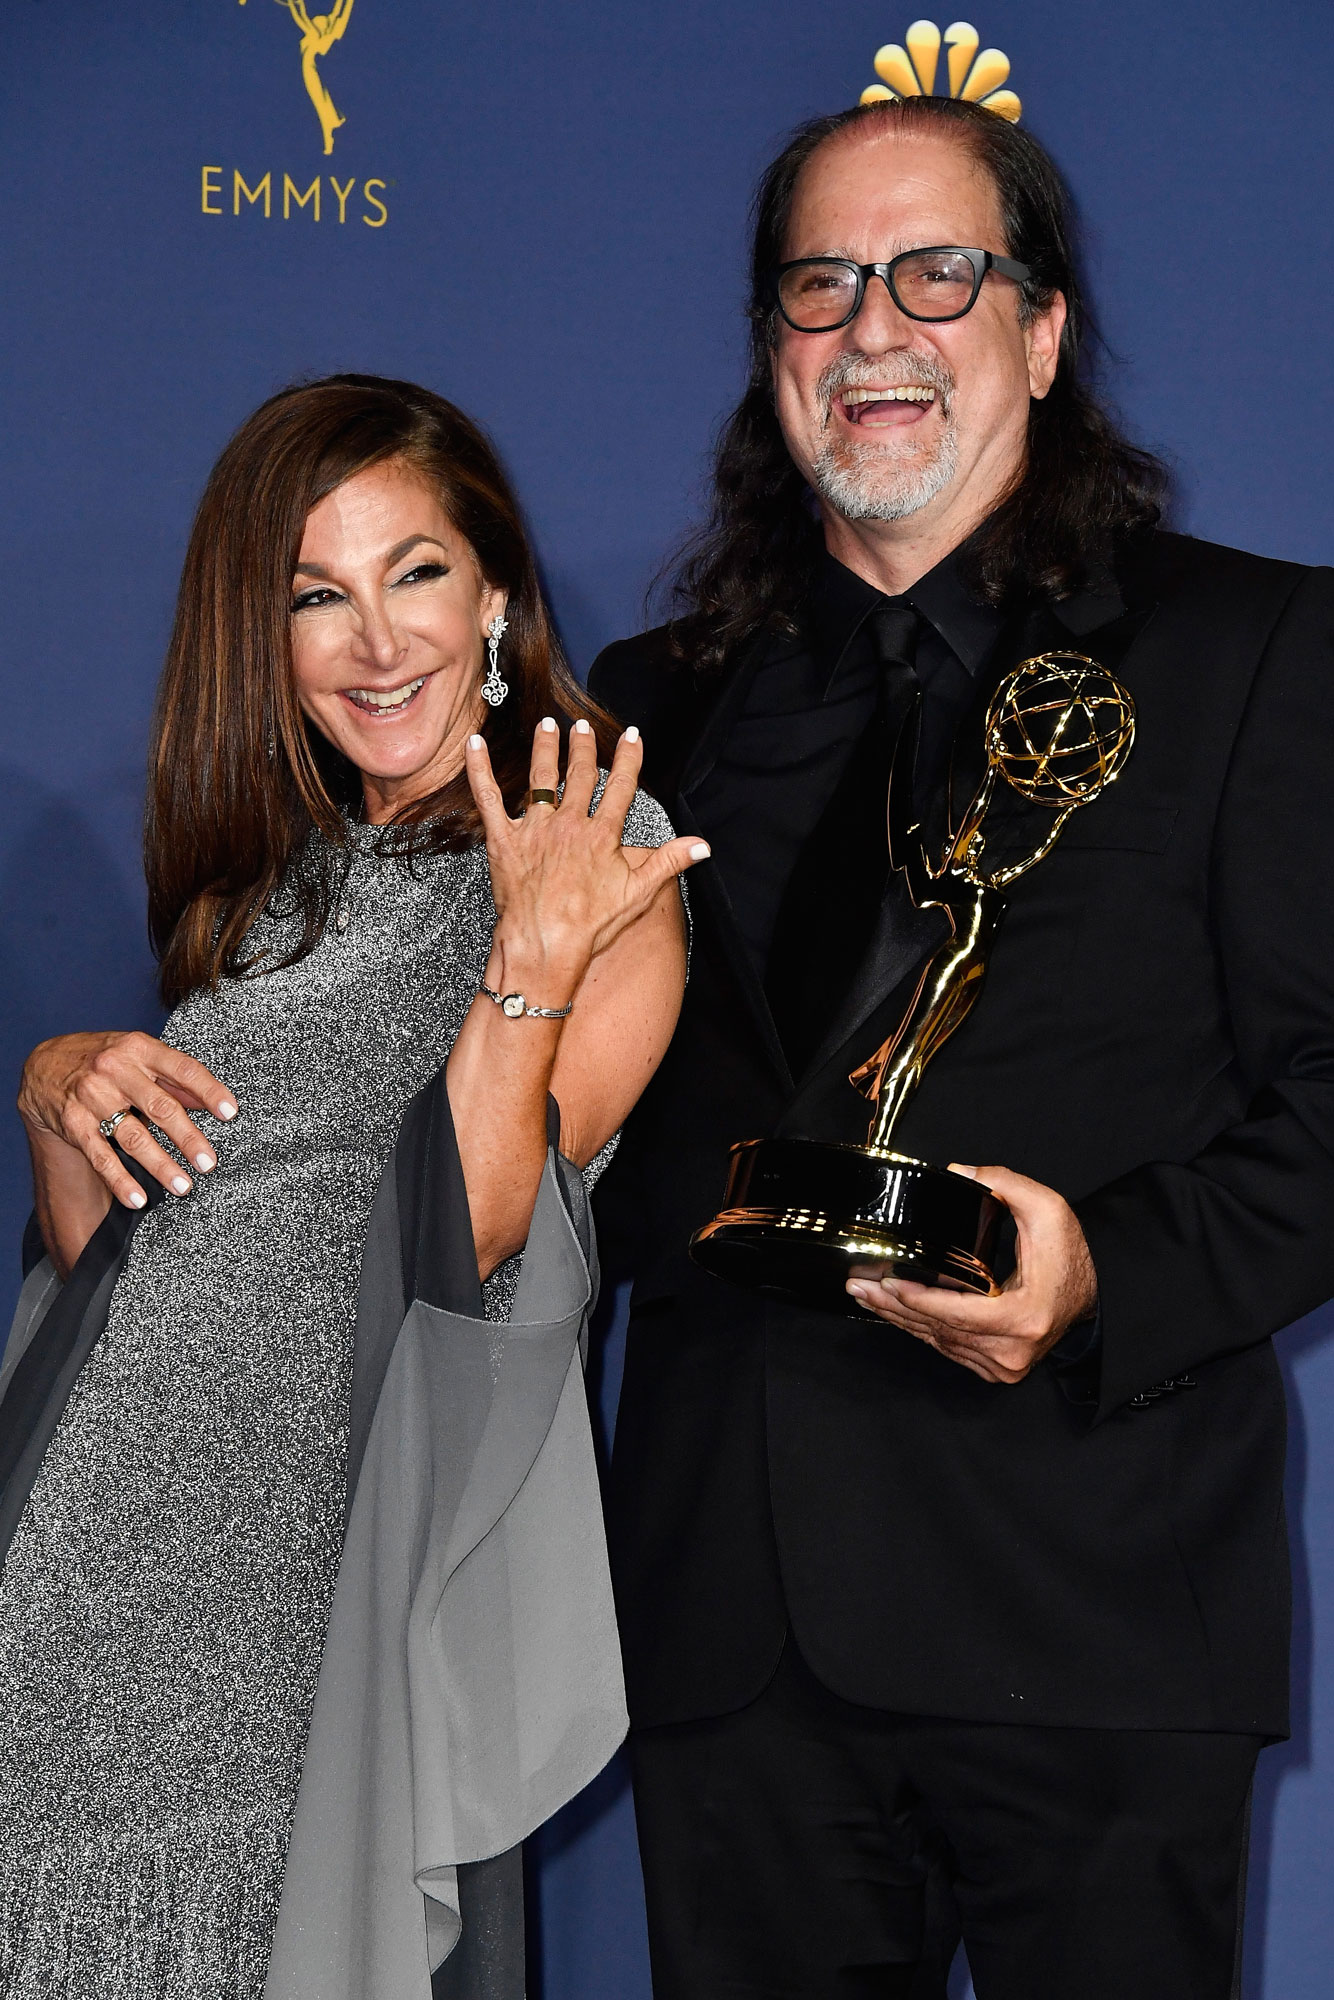 glenn weiss - Outstanding Directing for a Variety Special winner Glenn Weiss (R) poses with Jan Svendsen in the press room during the 70th Emmy Awards at Microsoft Theater on September 17, 2018 in Los Angeles, California. (Photo by Frazer Harrison/Getty Images)